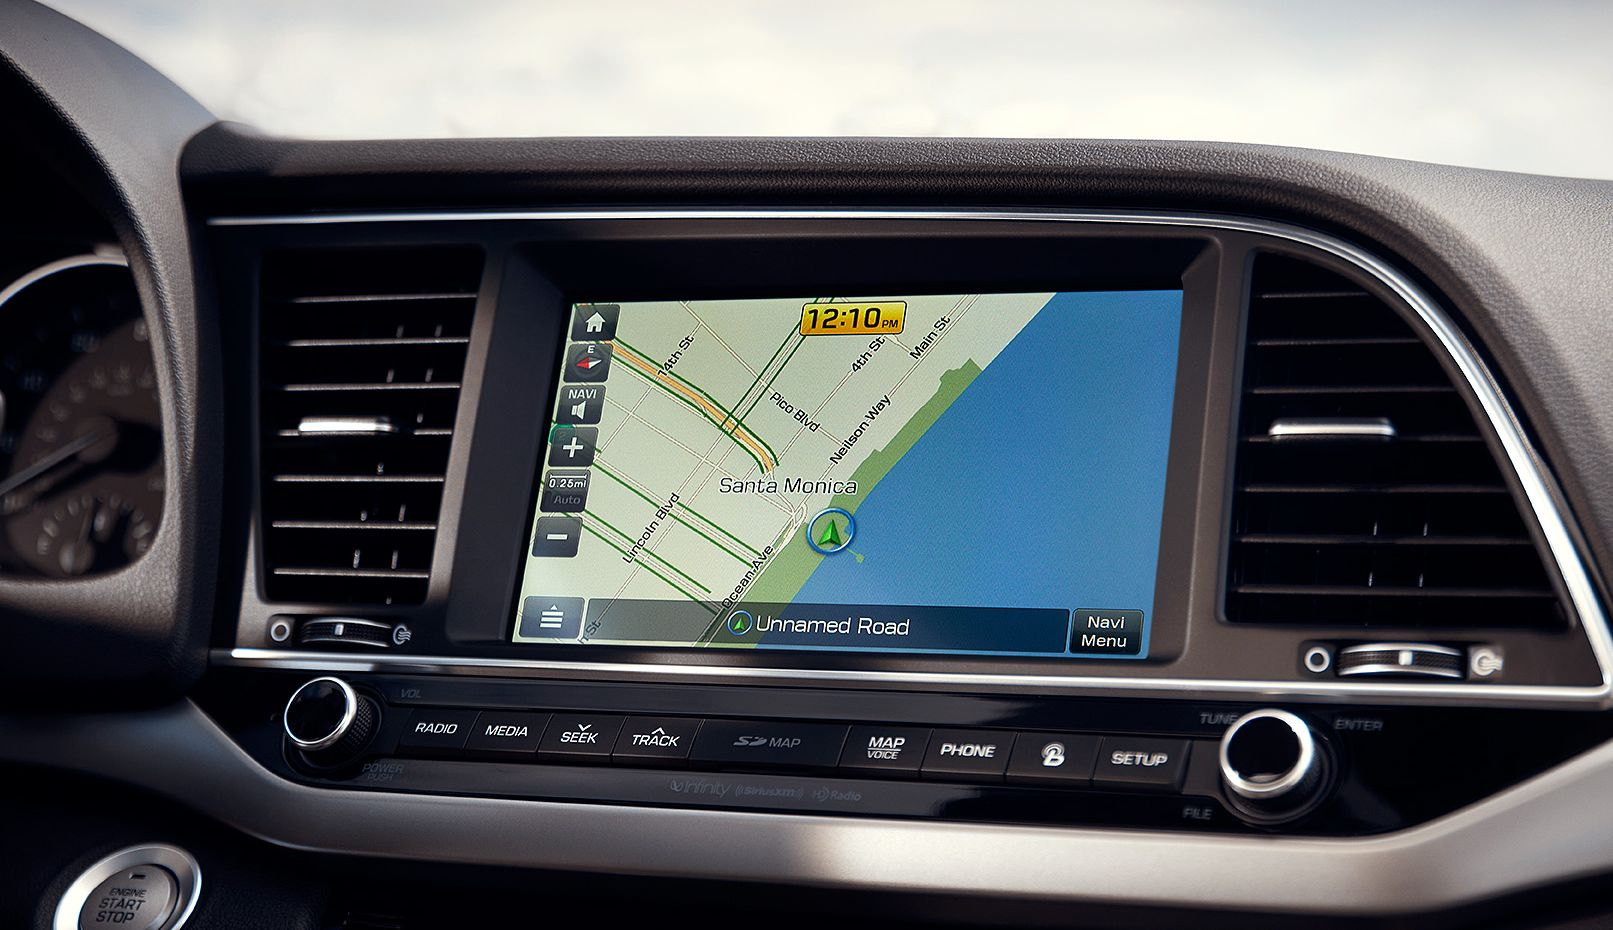 Hyundai Elantra 8-Inch Touchscreen with Navigation